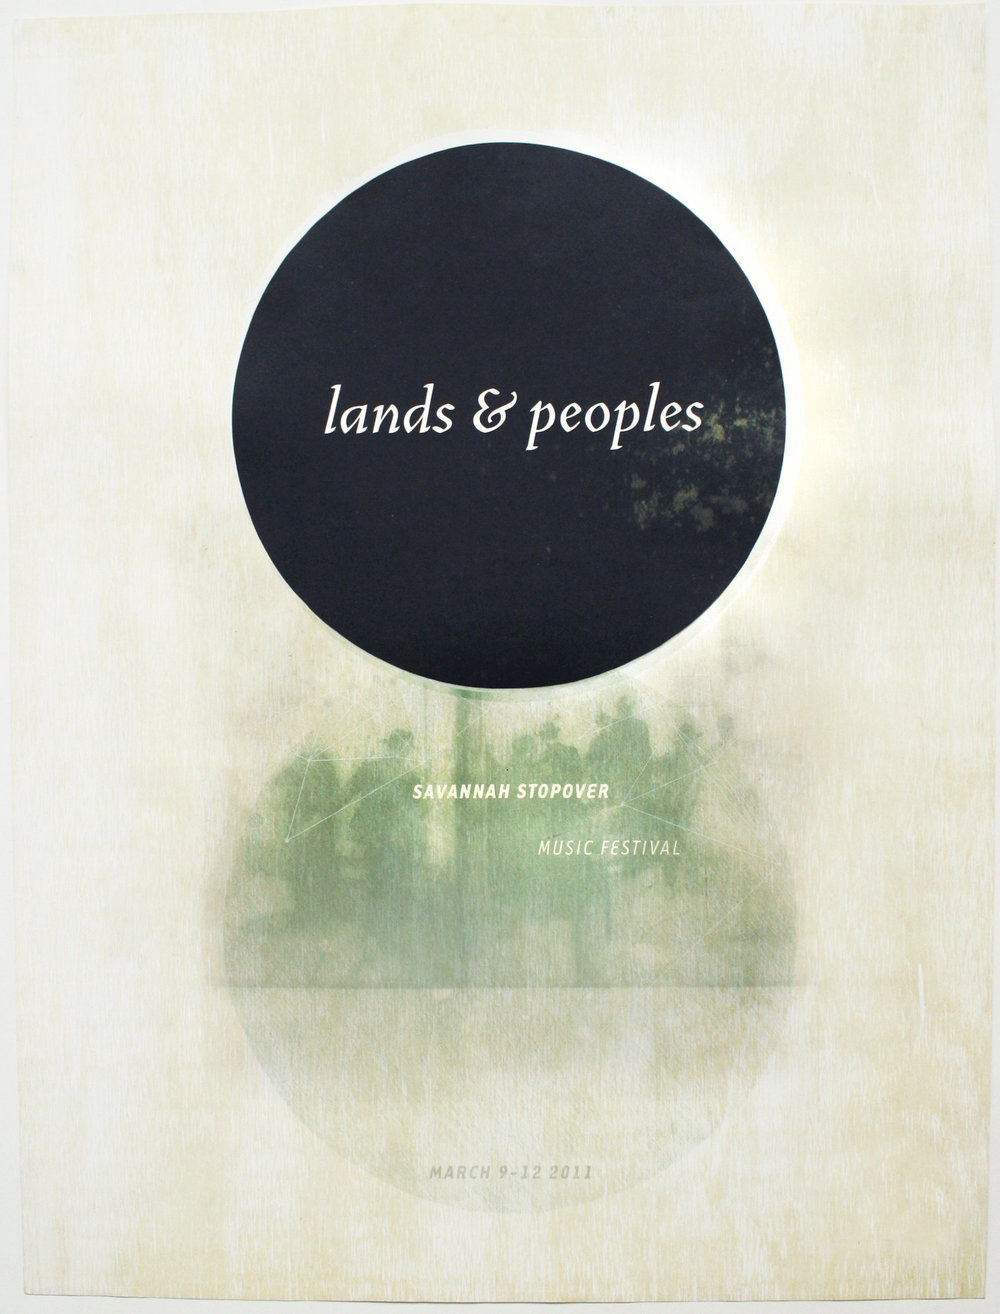 lands_and_peoples_bandposter.jpg